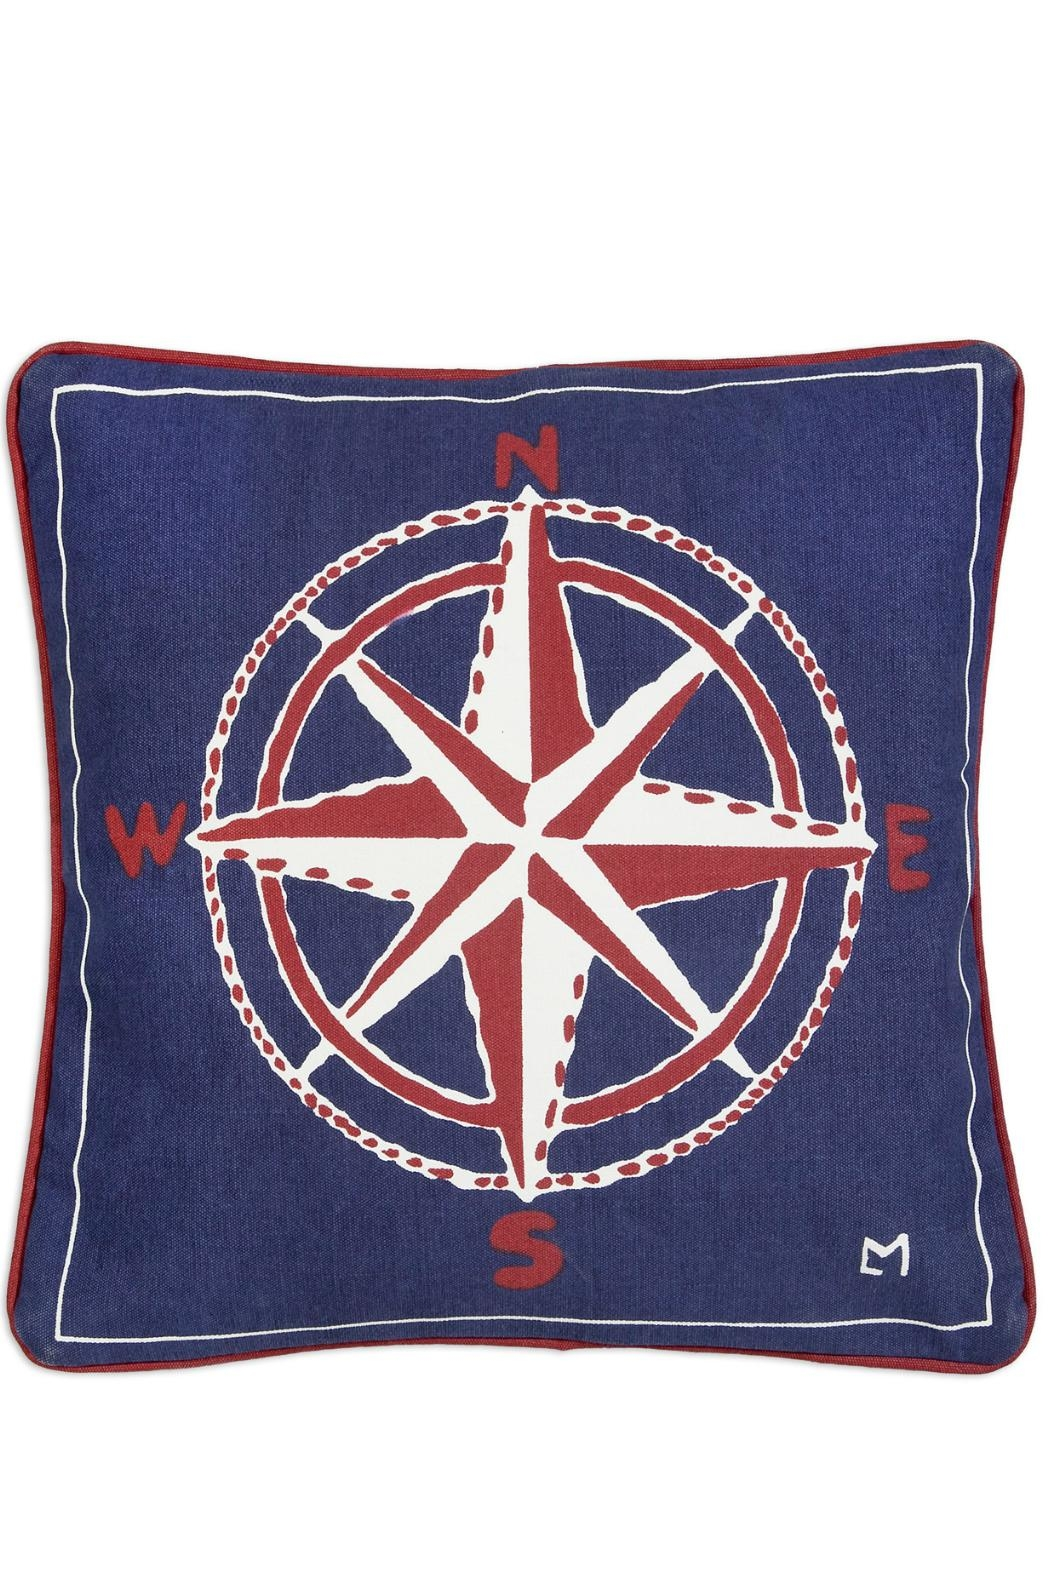 Chandler 4 Corners Compass Canvas Pillow - Main Image